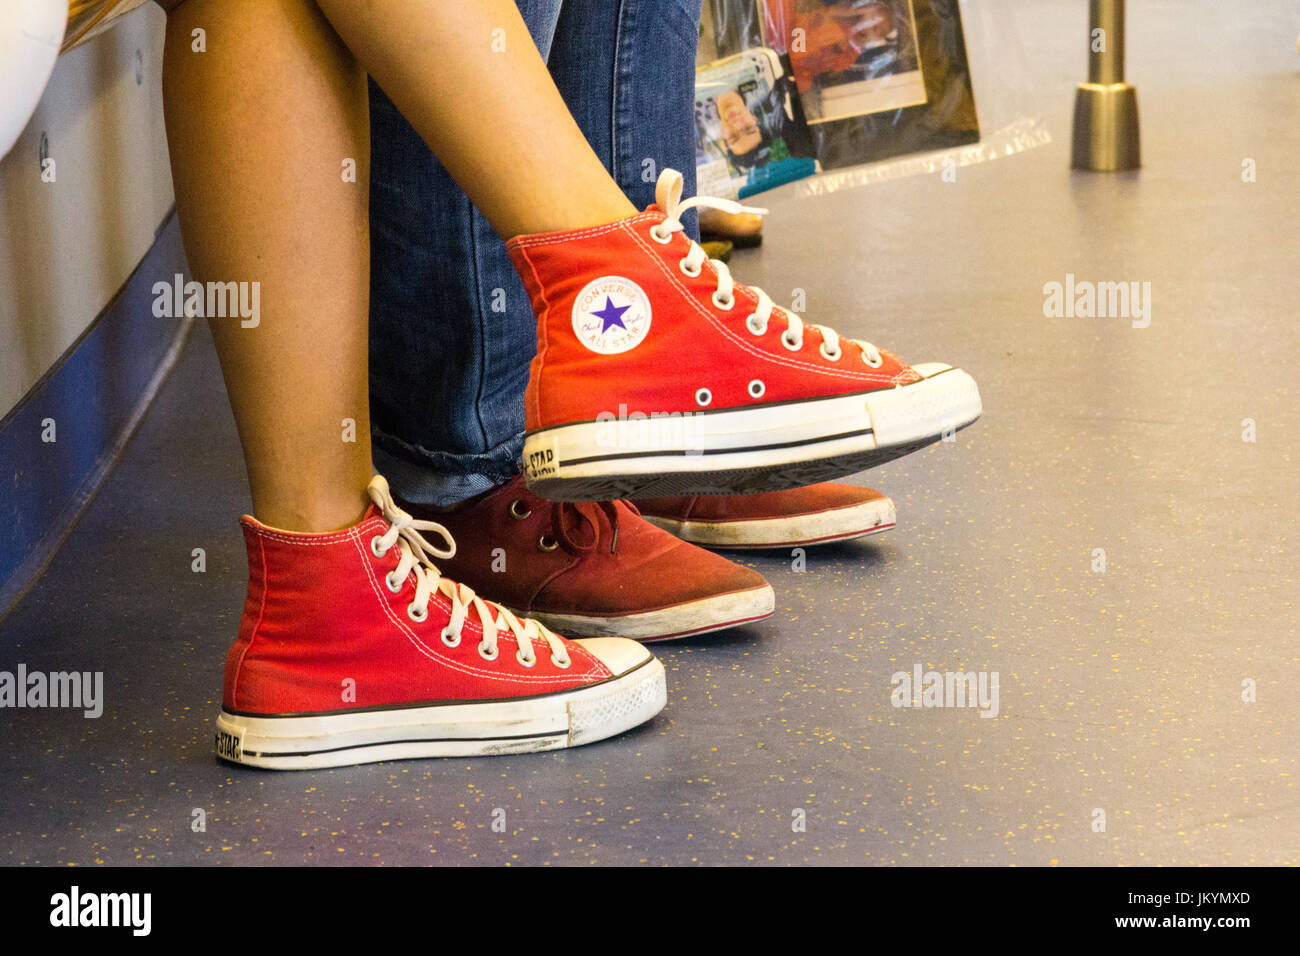 417741fad55c Young girl wearing pair of Converse All Star shoes Stock Photo ...